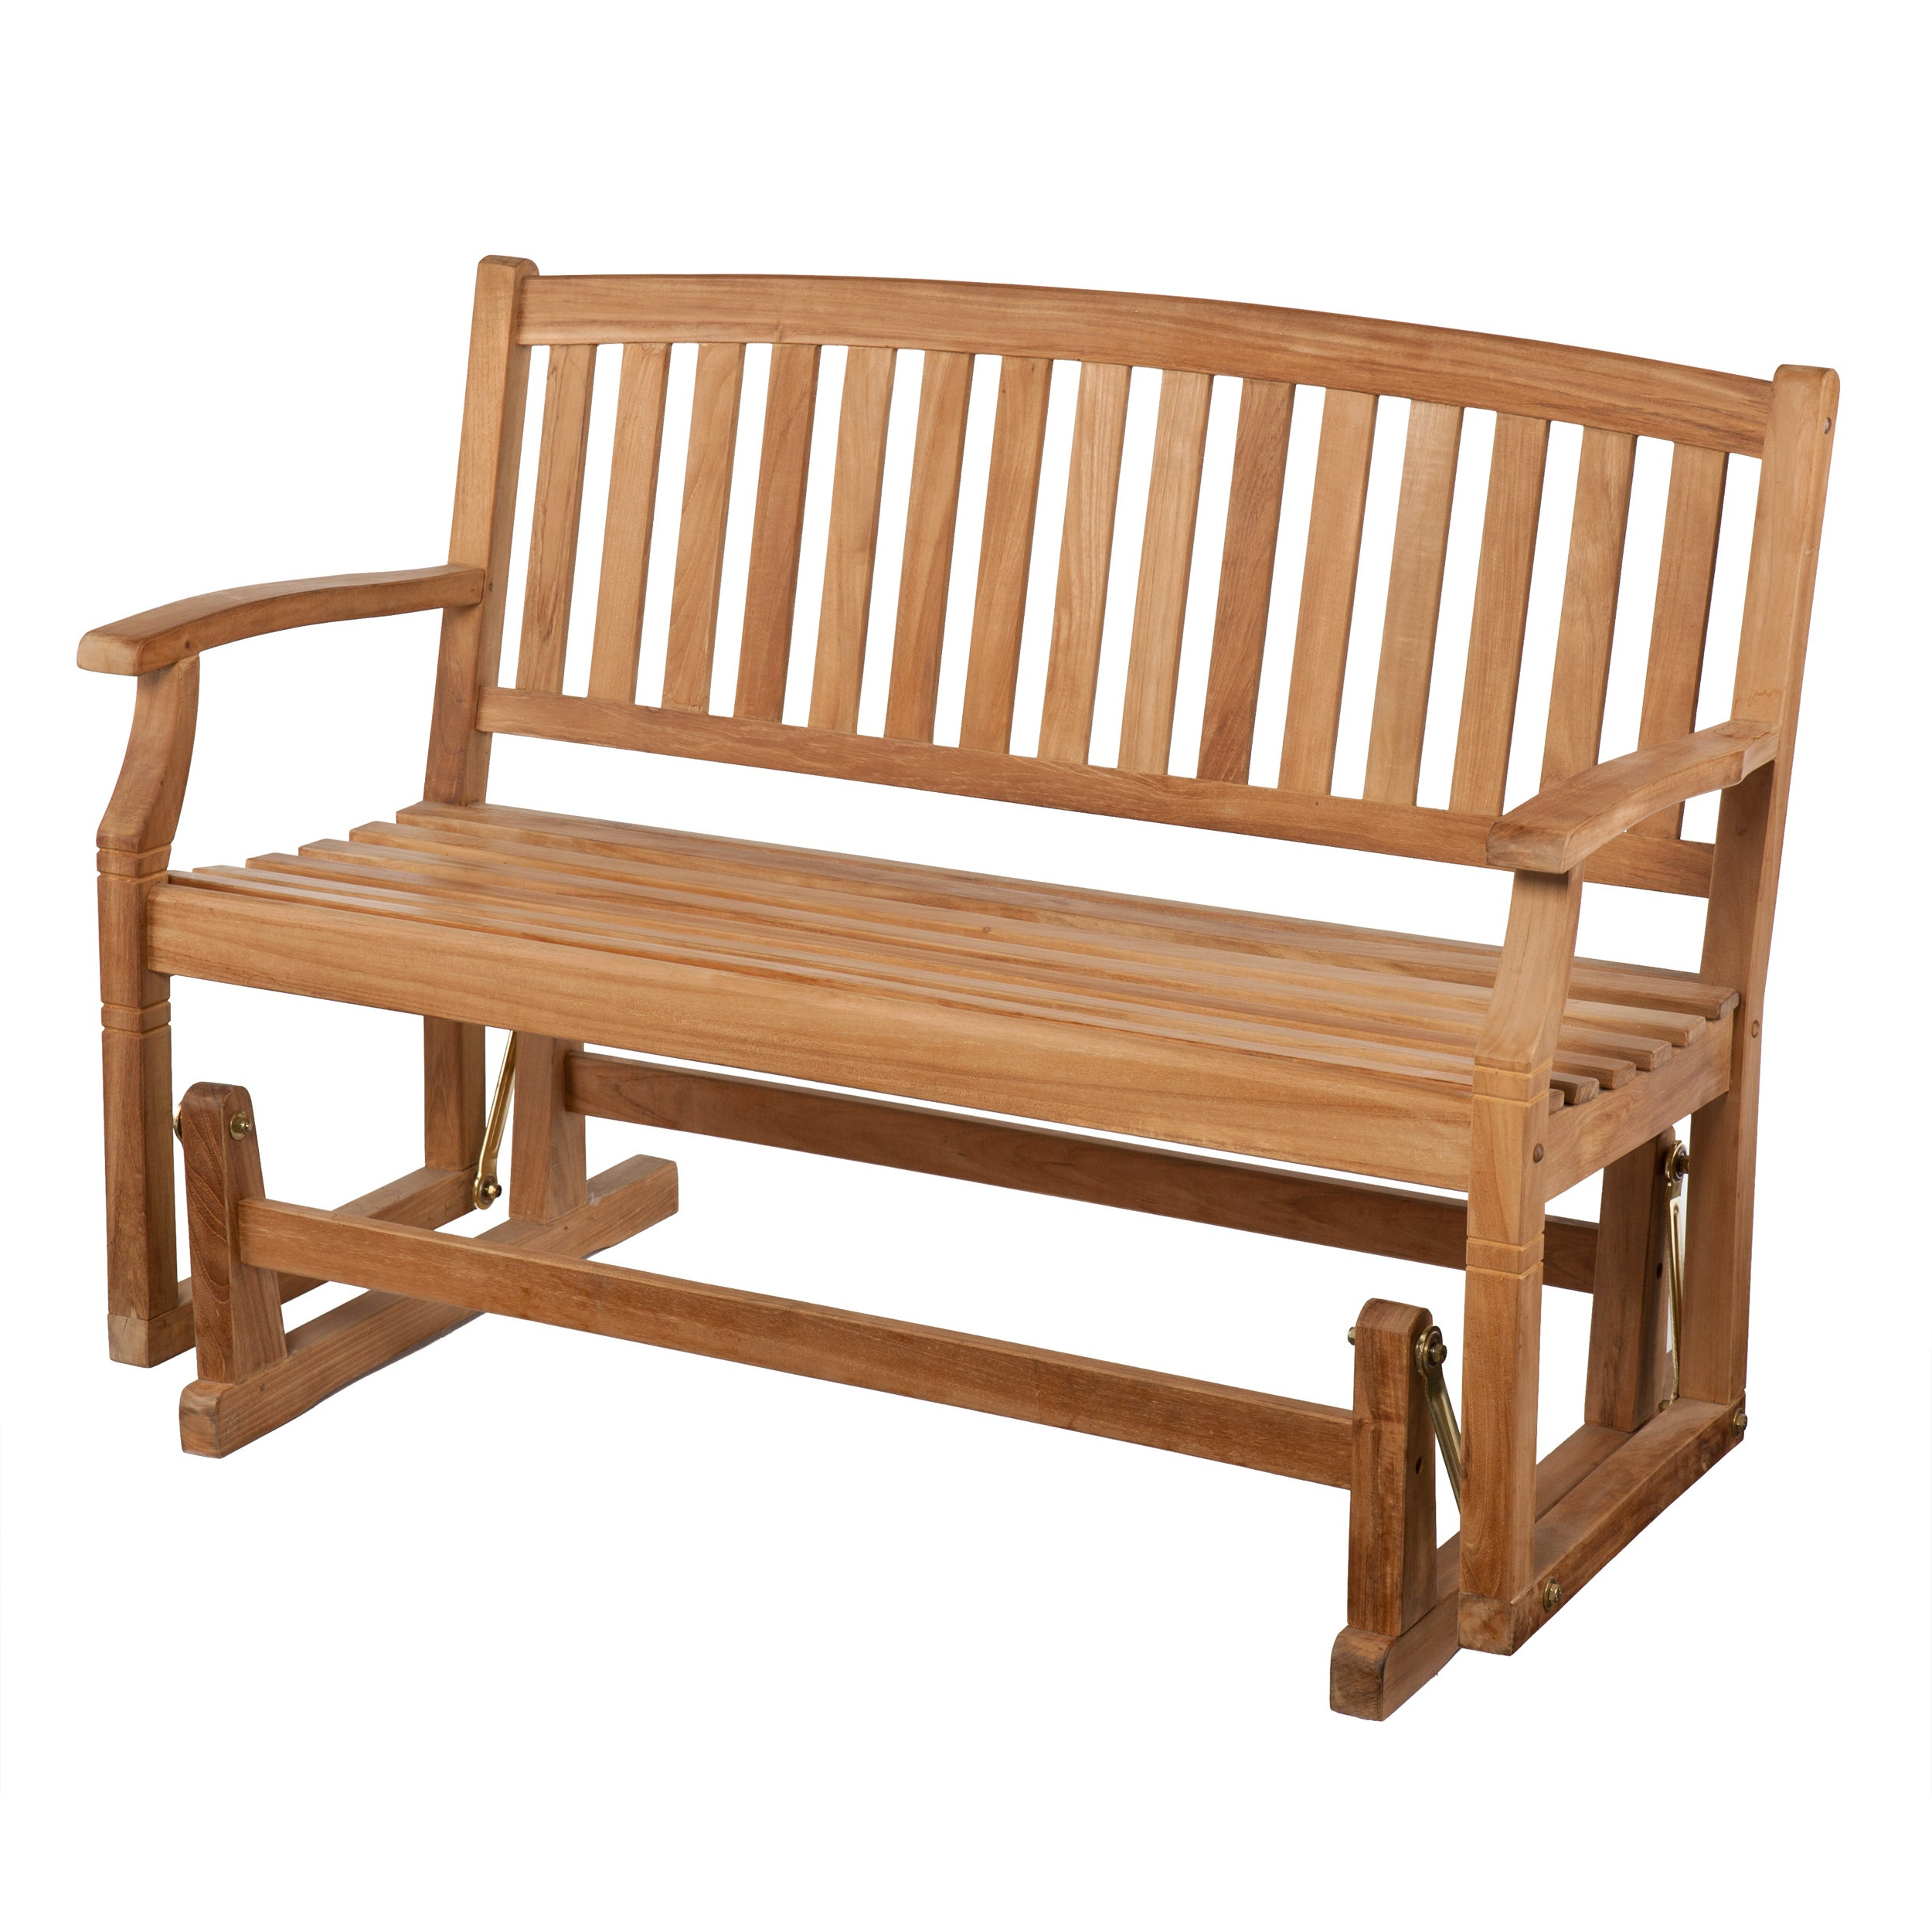 Coleen Outdoor Teak Garden Benches With Regard To 2019 Reseda Teak Outdoor Glider Bench (View 12 of 30)